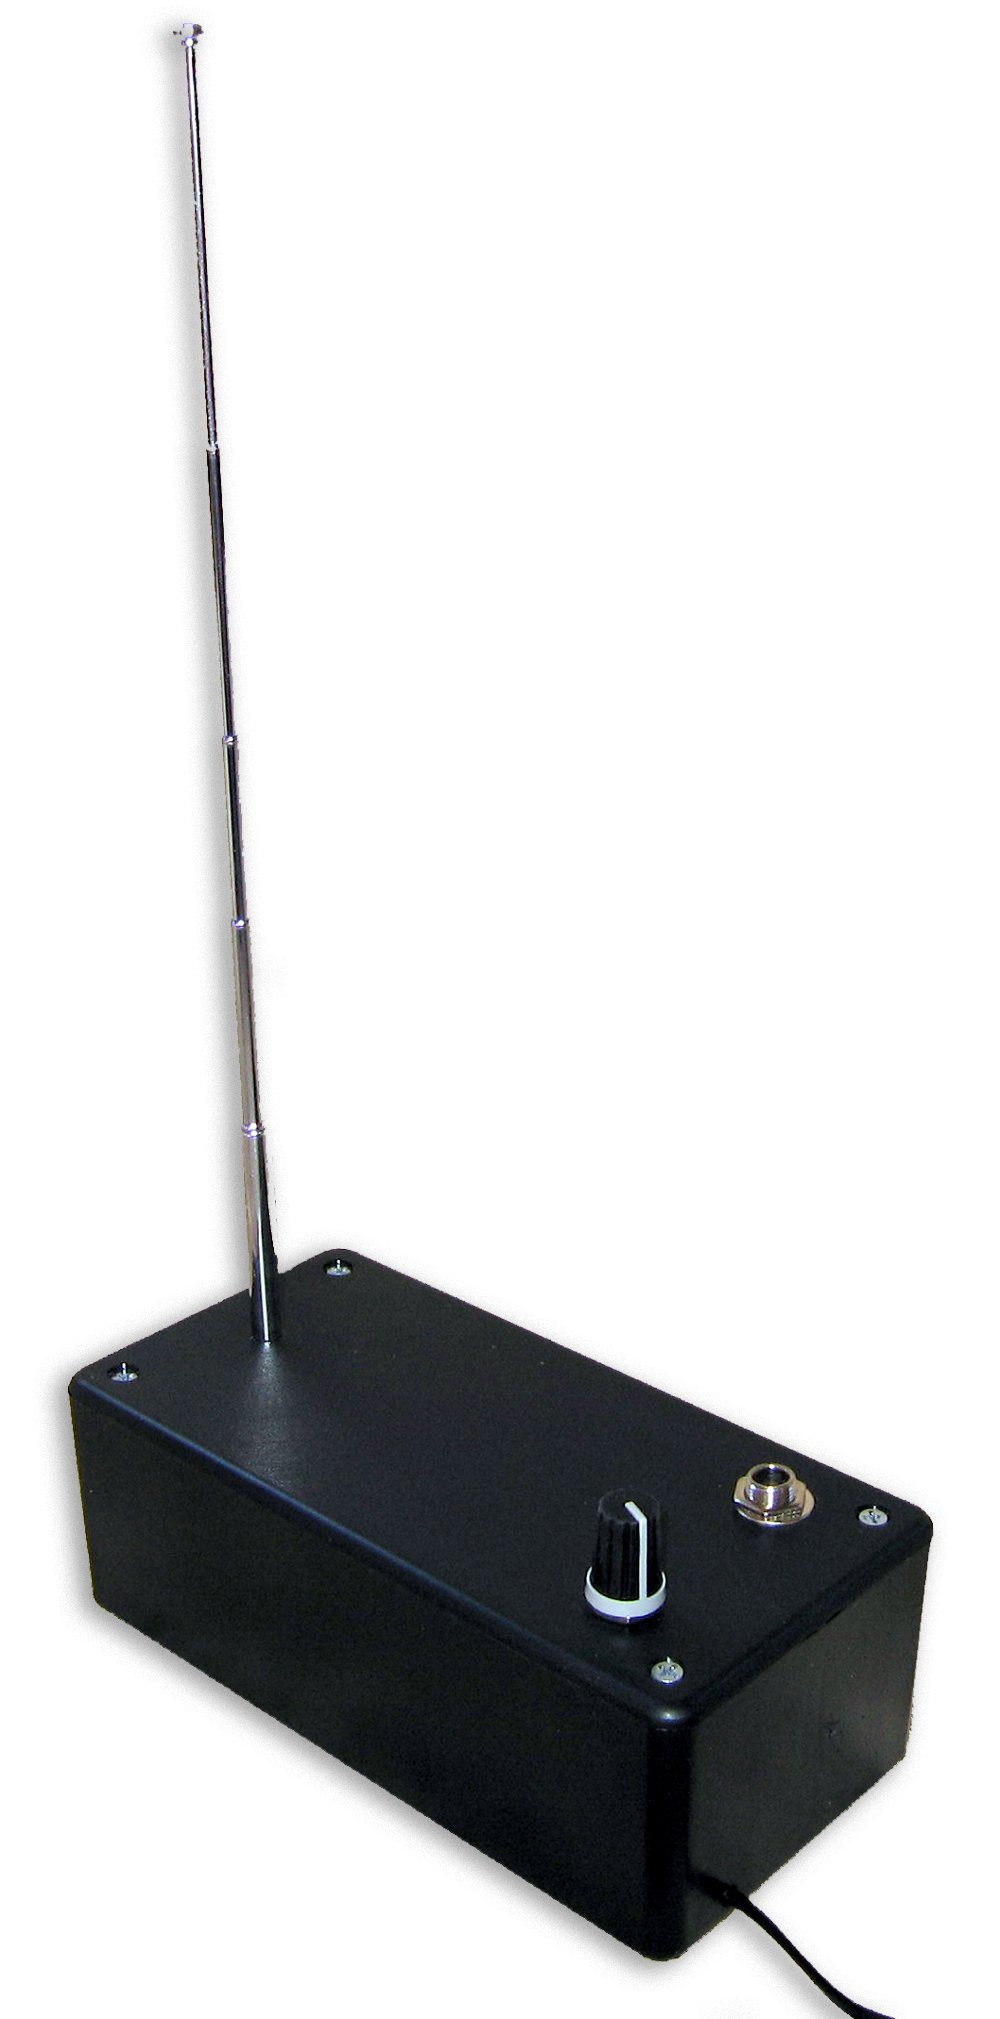 Great Sounding Theremin At a Great Price